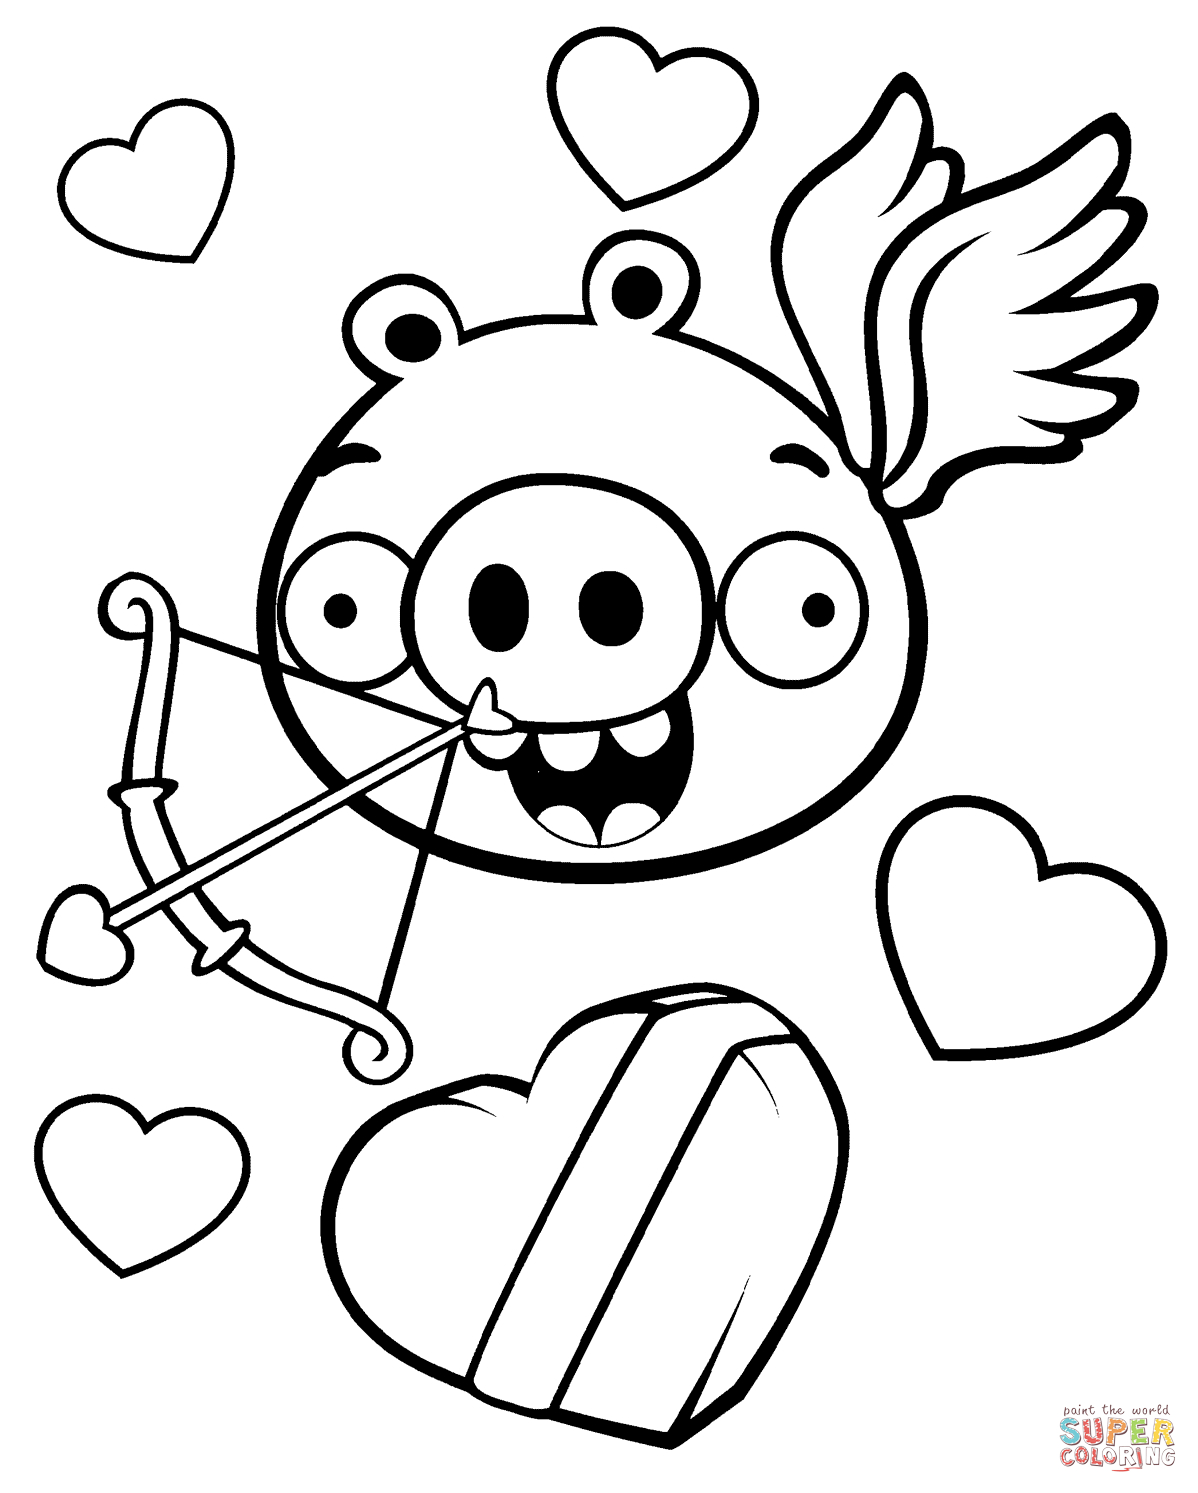 Coloring Pages Valentine Minion Pig Valentine Theme Coloring Page Free Printable Coloring Pages